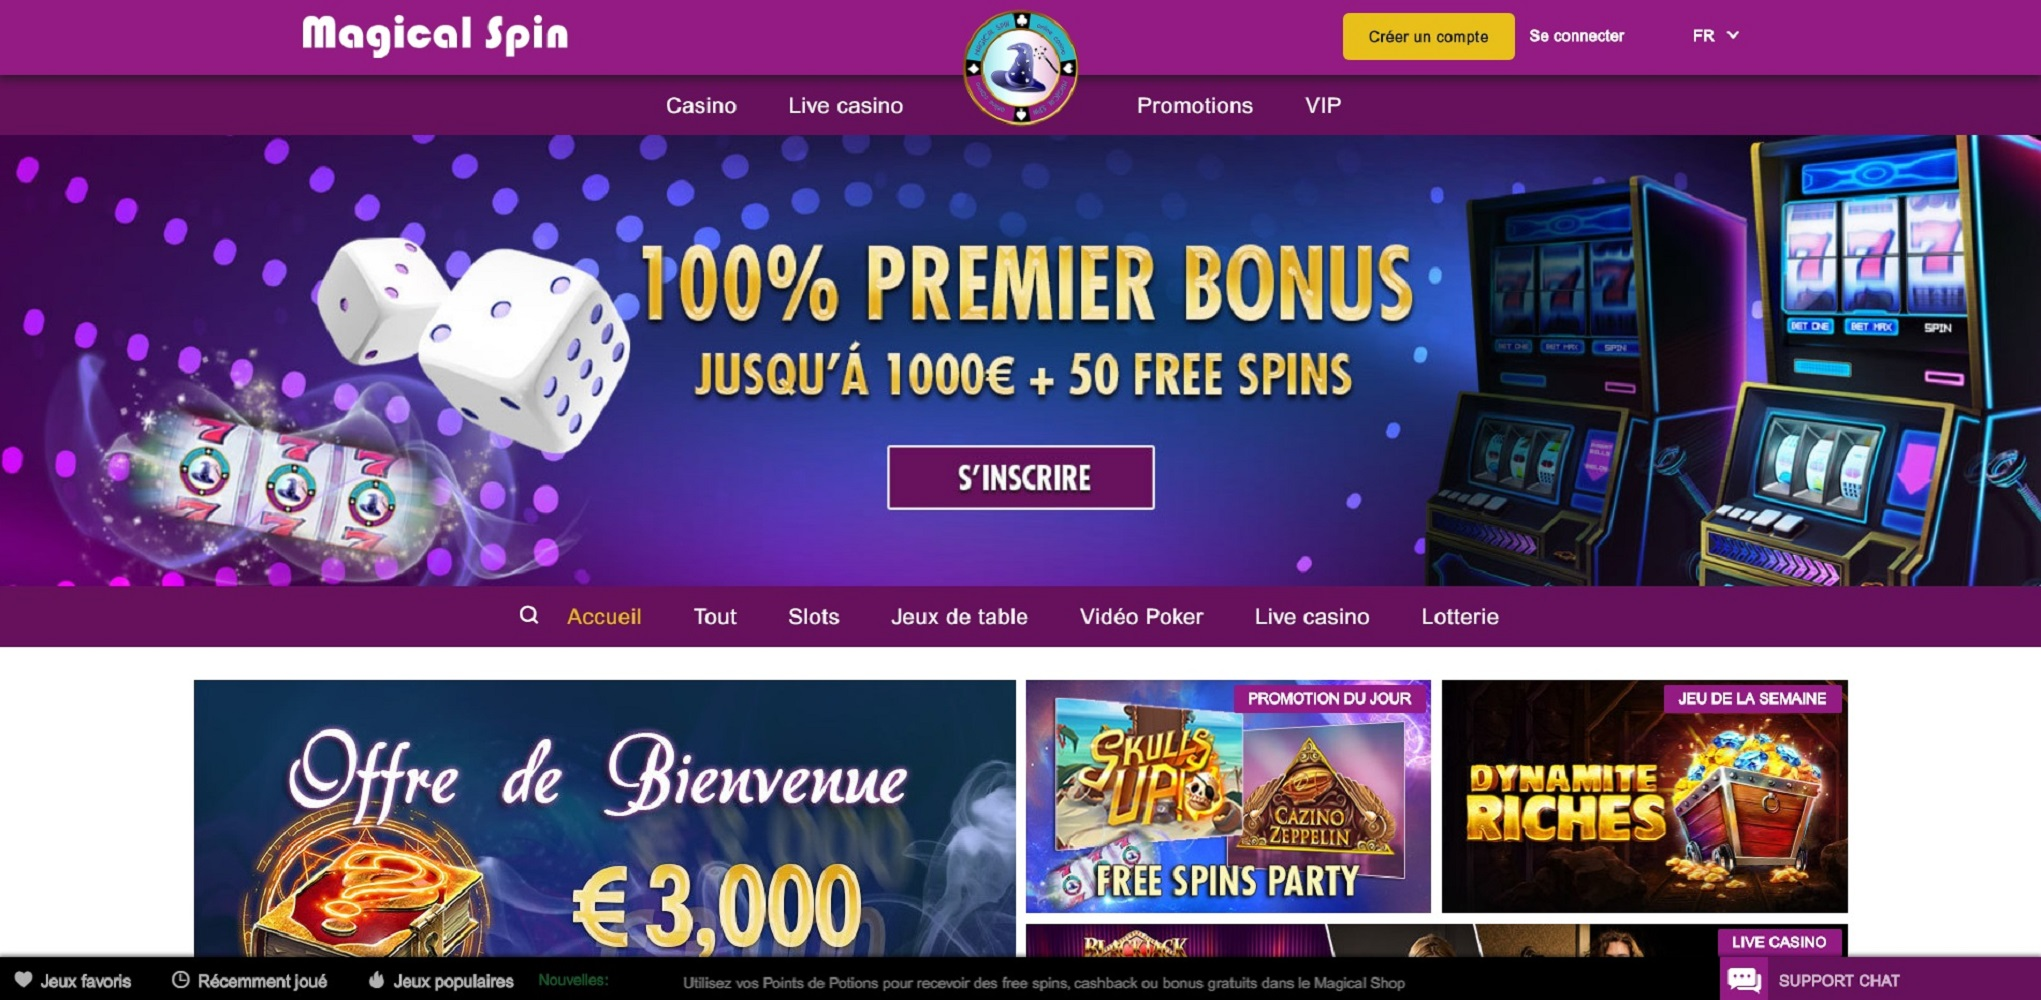 Avis pour comprendre l'univers du Casino Magical Spin